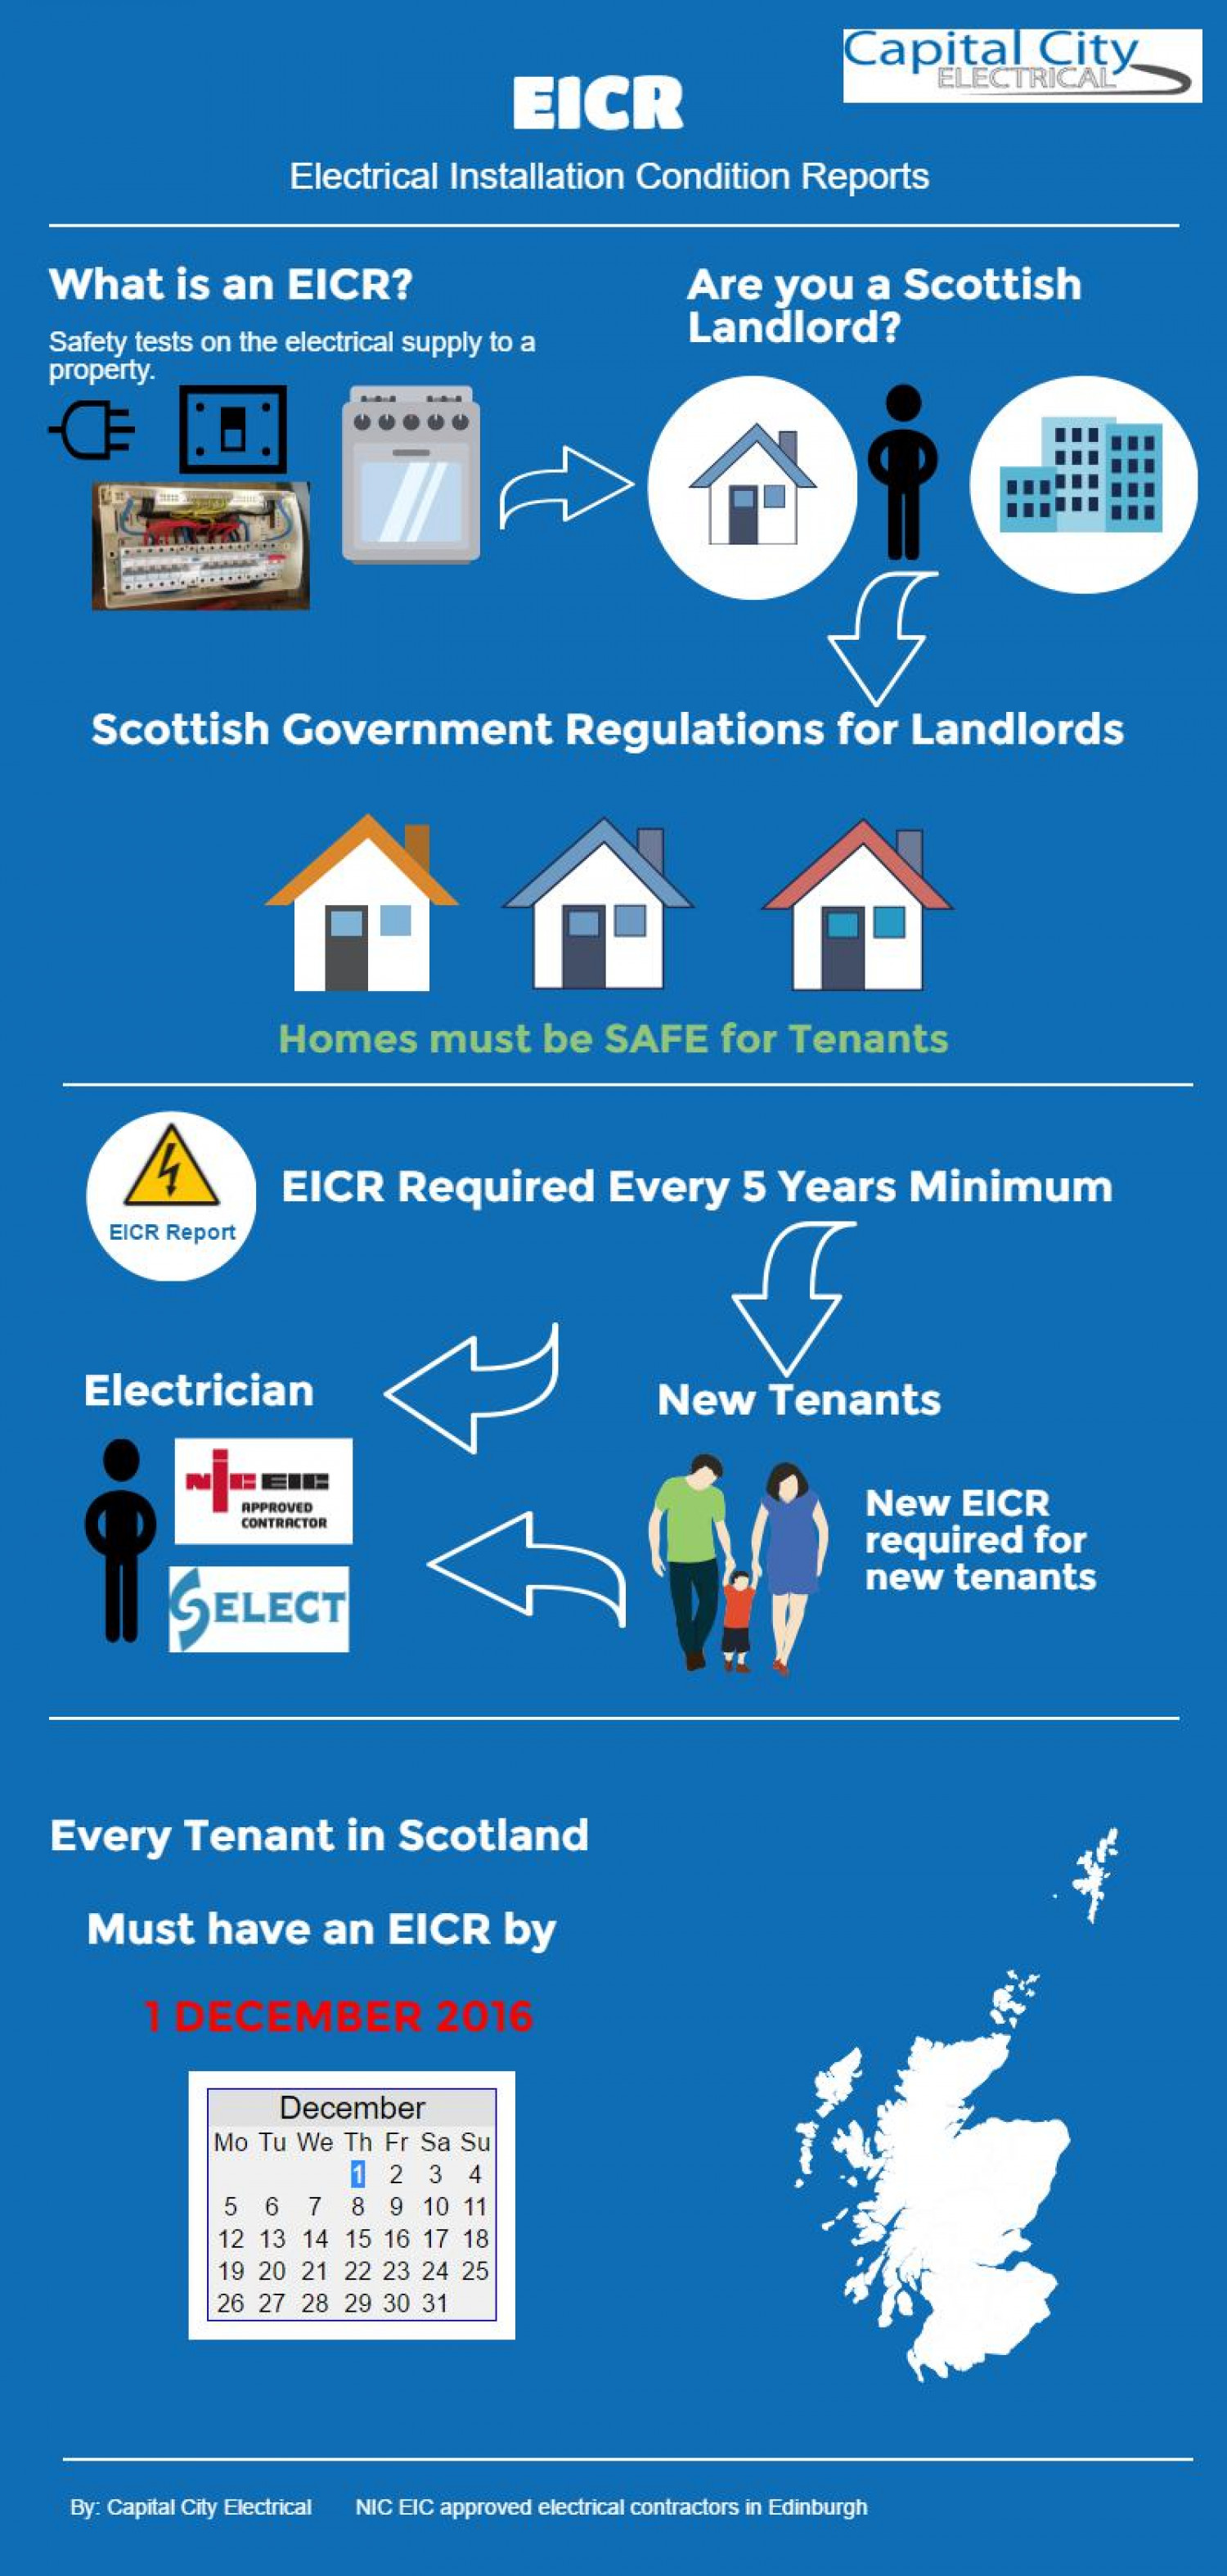 EICR & Tenant Electrical Safety in Scotland Infographic